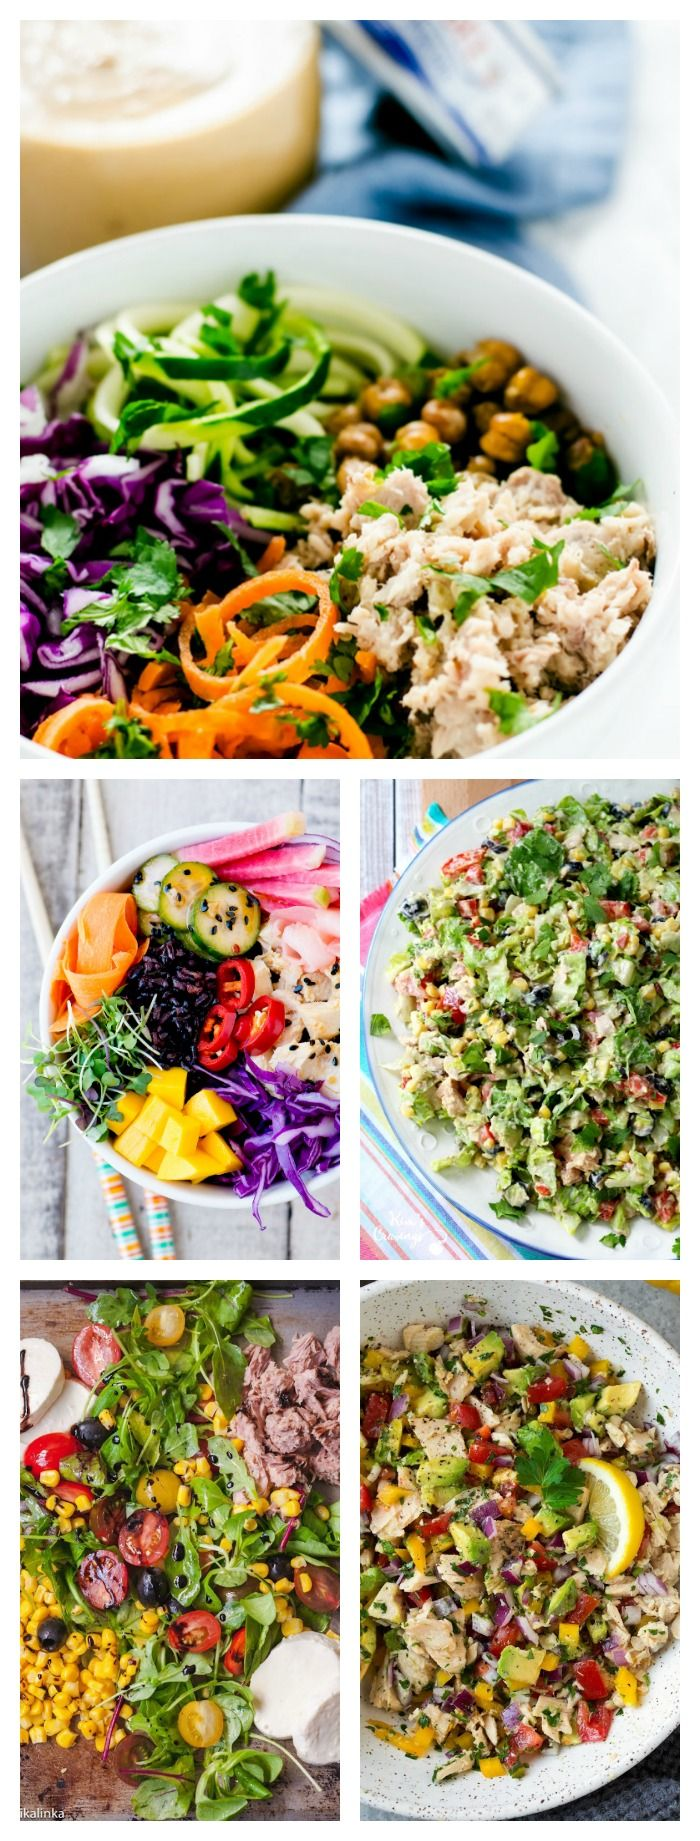 20 Reasons Why You Should Fall In Love With Canned Tuna Recipes